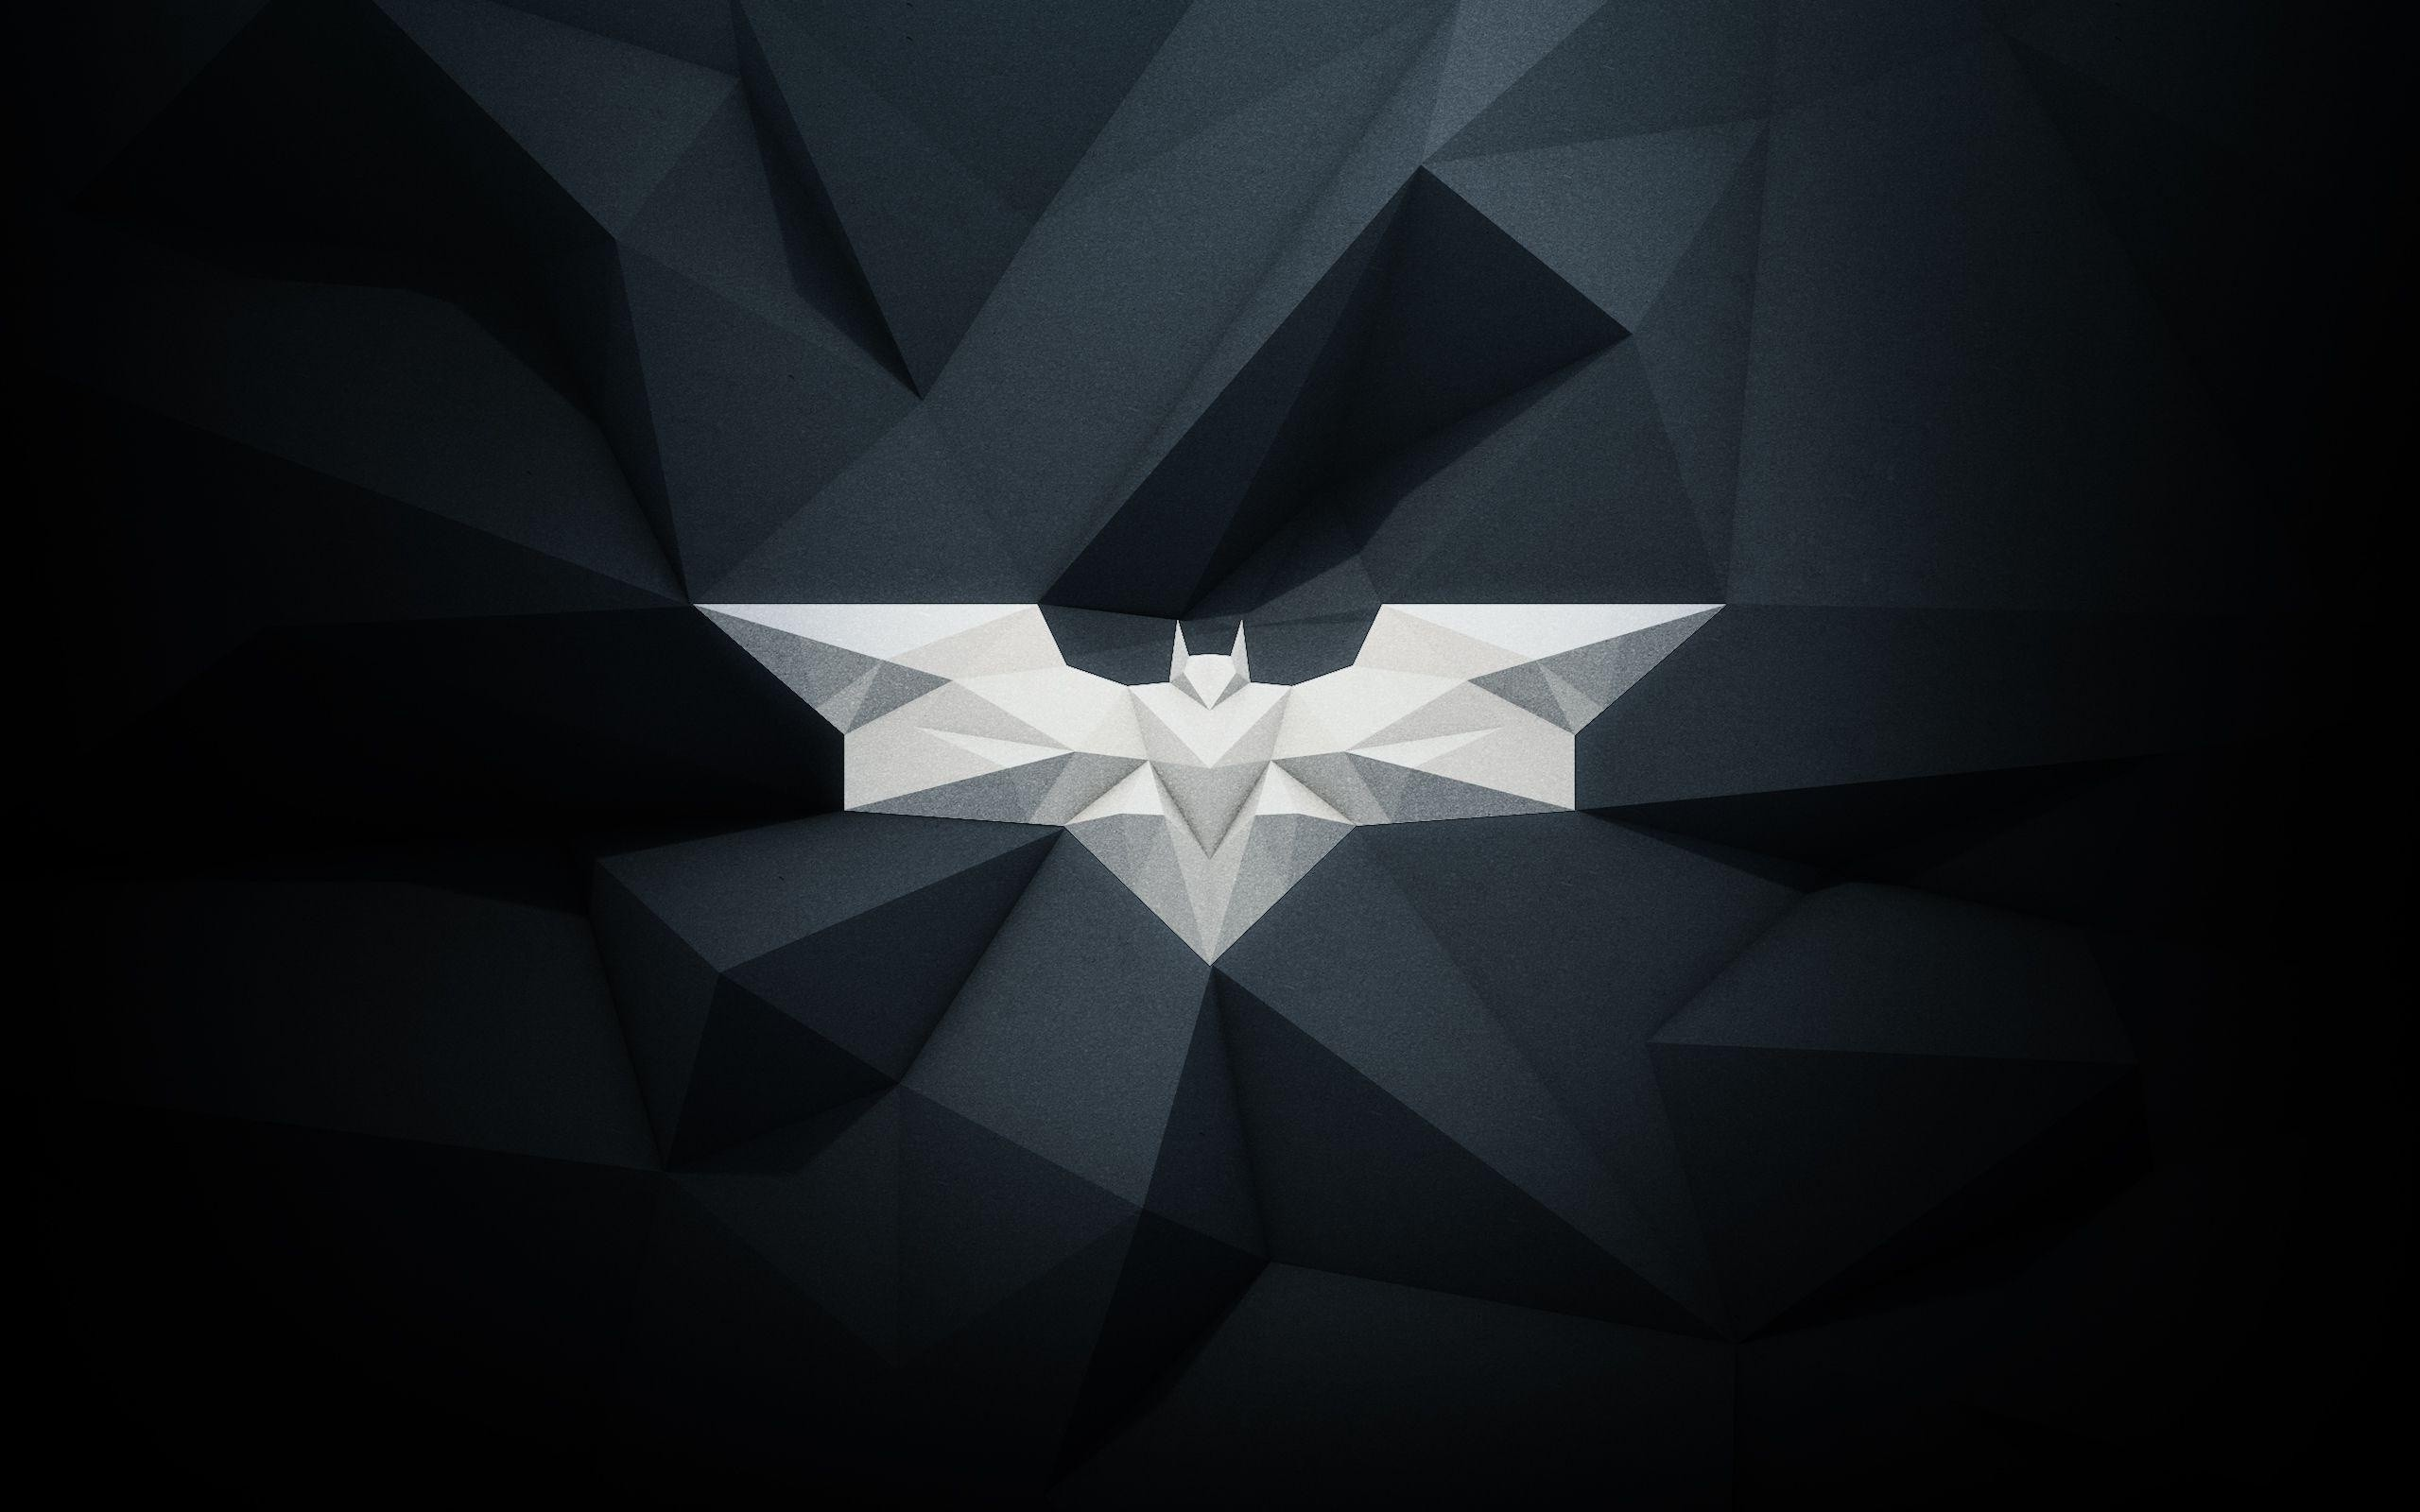 Wallpaper Batman Logo Poligonal